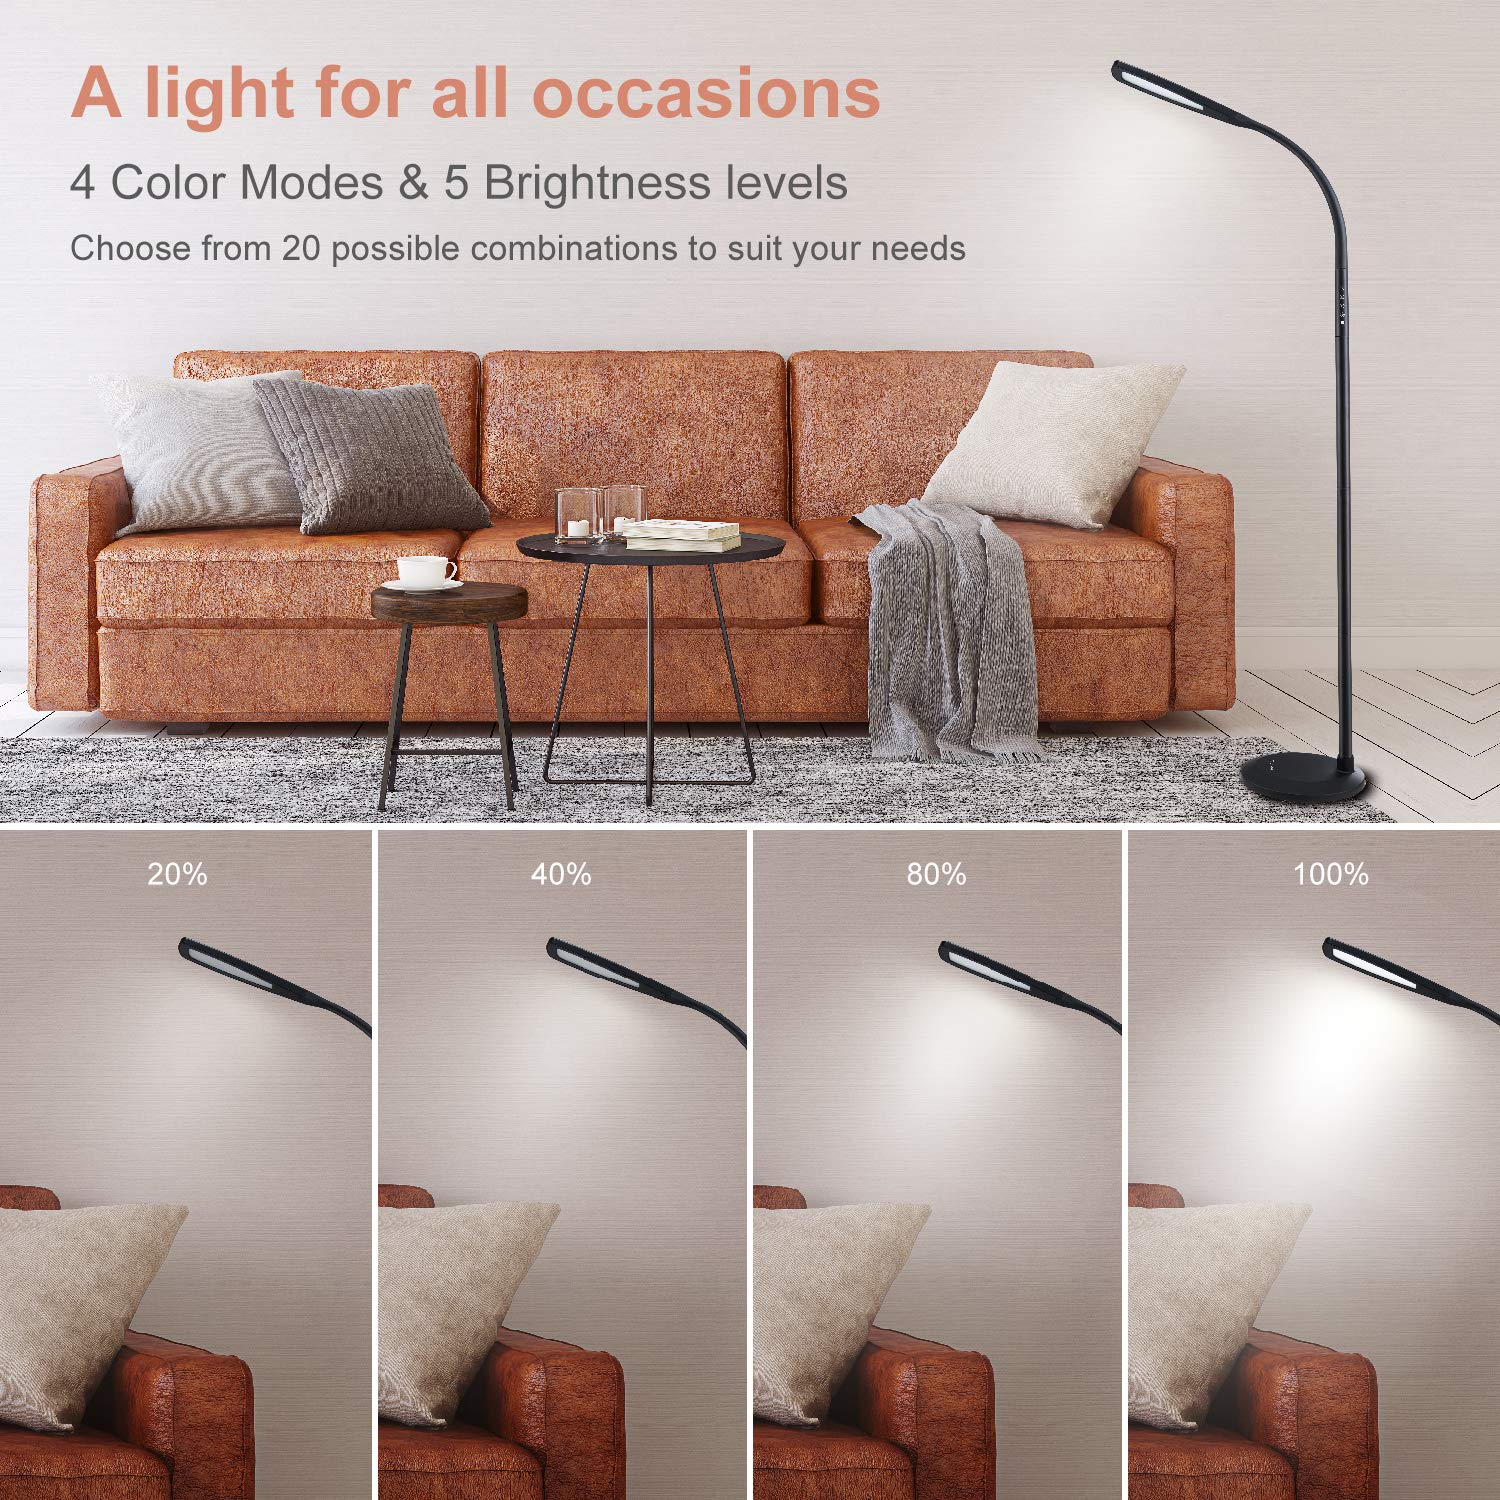 PHIVE LED Floor Lamp for Reading, Dimmable Gooseneck Standing Lamp (4 Color Modes, 5-Level Dimmer, 12W, Memory Function, Touch Control Floor Light for Living Room, Bedroom, Office) Black by PHIVE (Image #2)